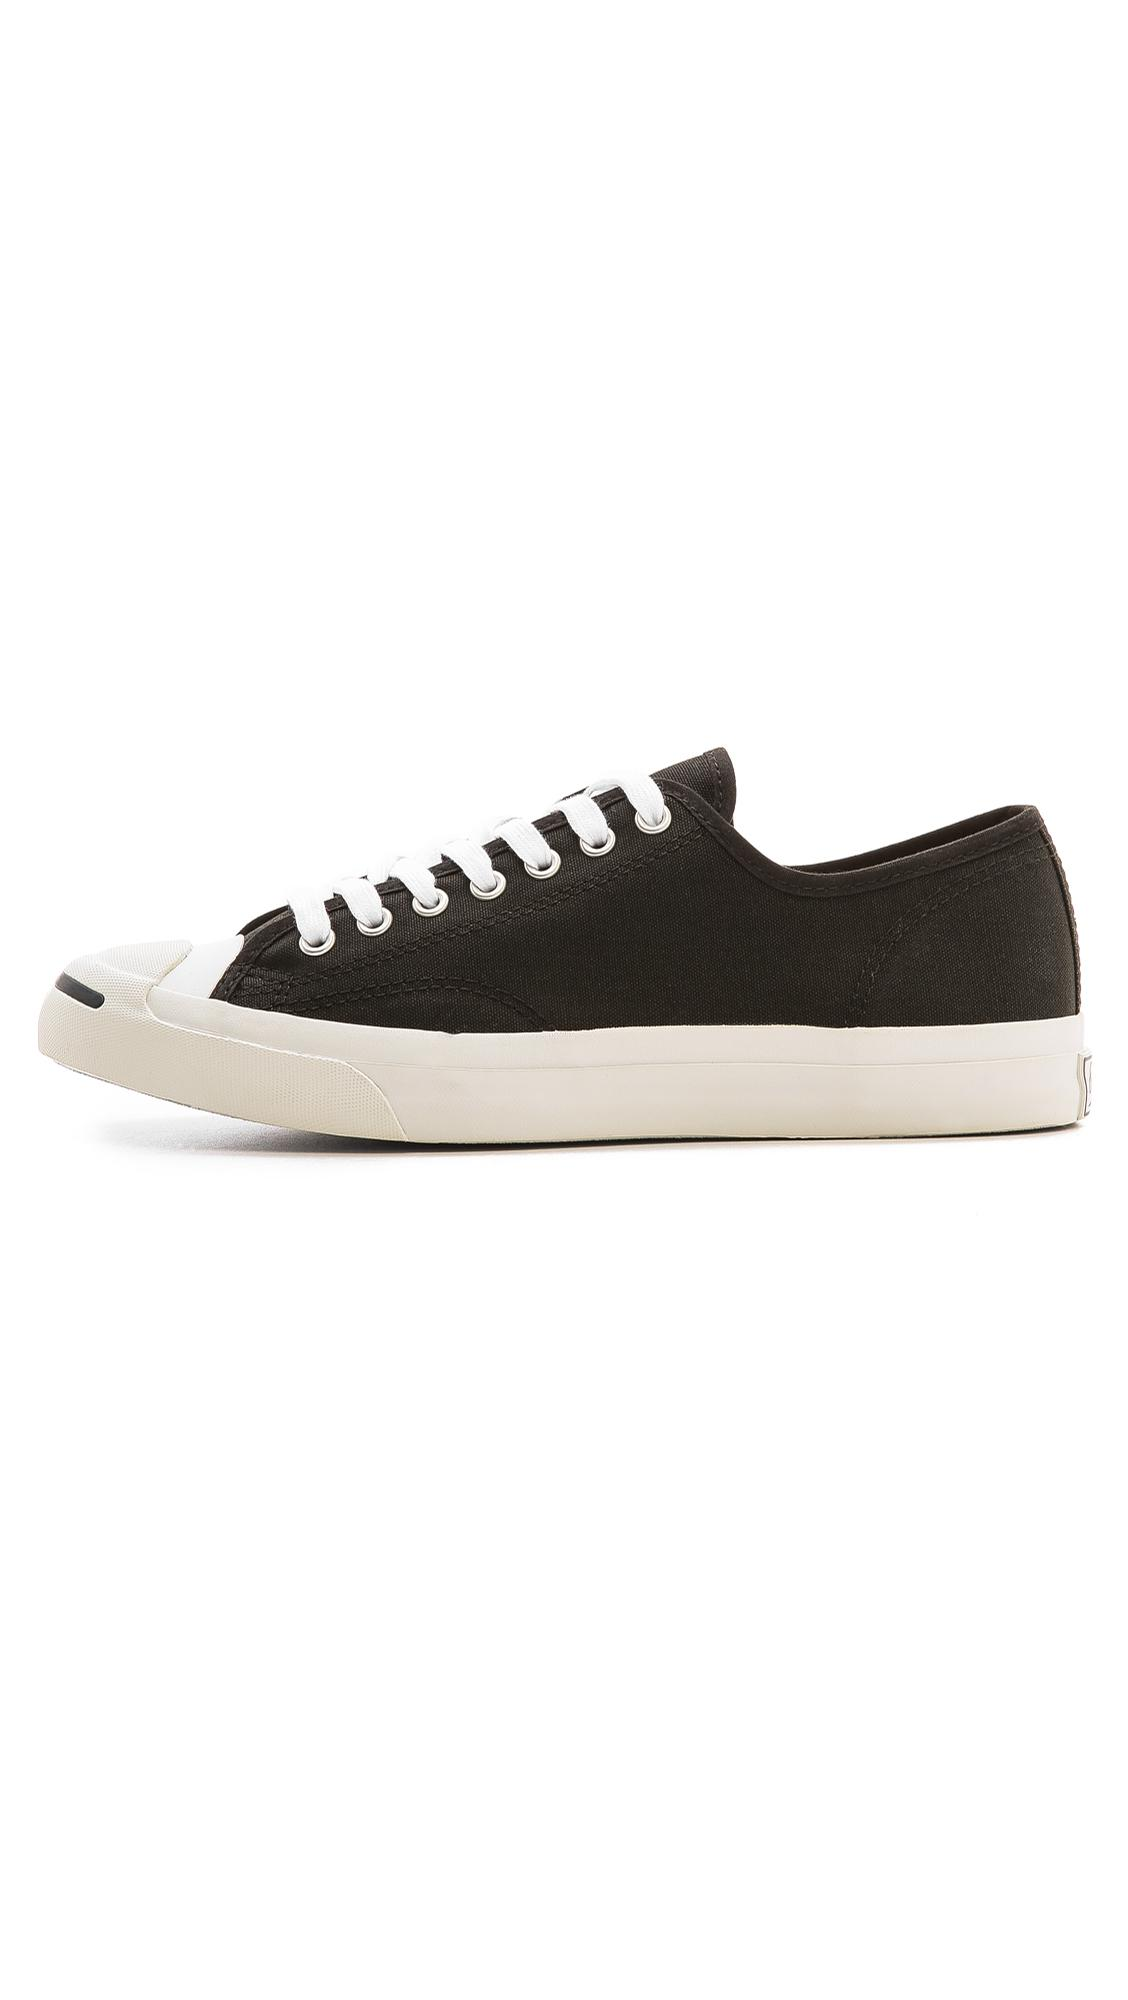 ce74acdc2b44 Converse - Black Jack Purcell Canvas Sneakers for Men - Lyst. View  fullscreen